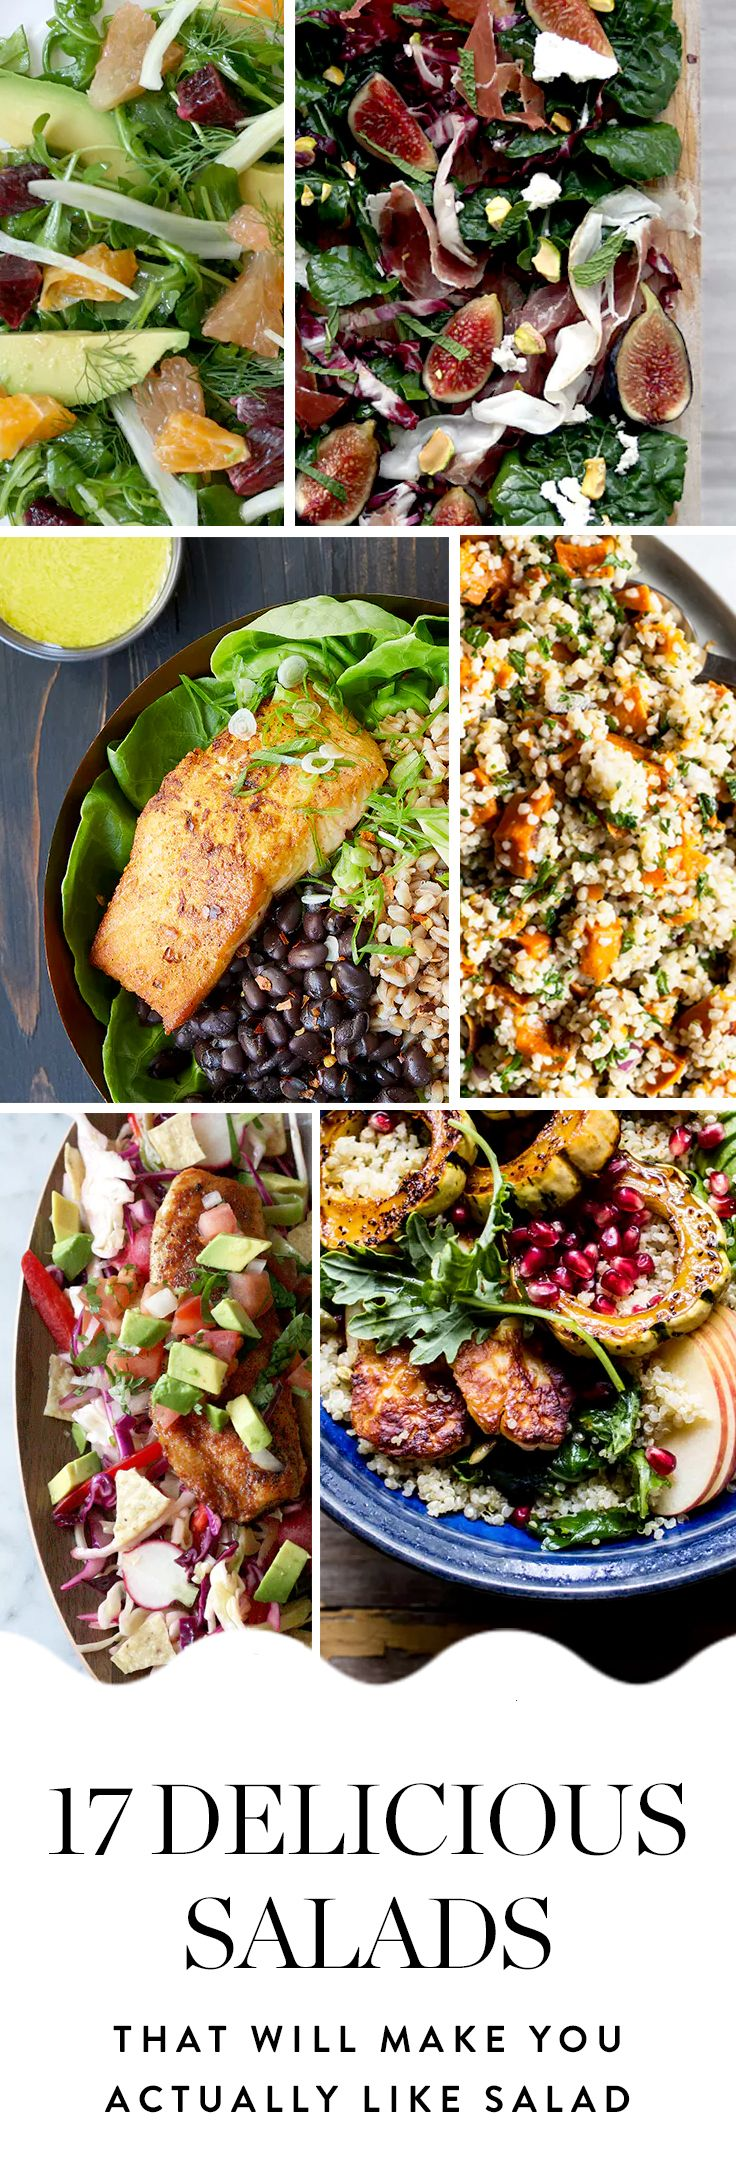 Before you denounce salads forever, we have 17 flavor-packedversionswepromiseyou'll be into. Get the recipes here.